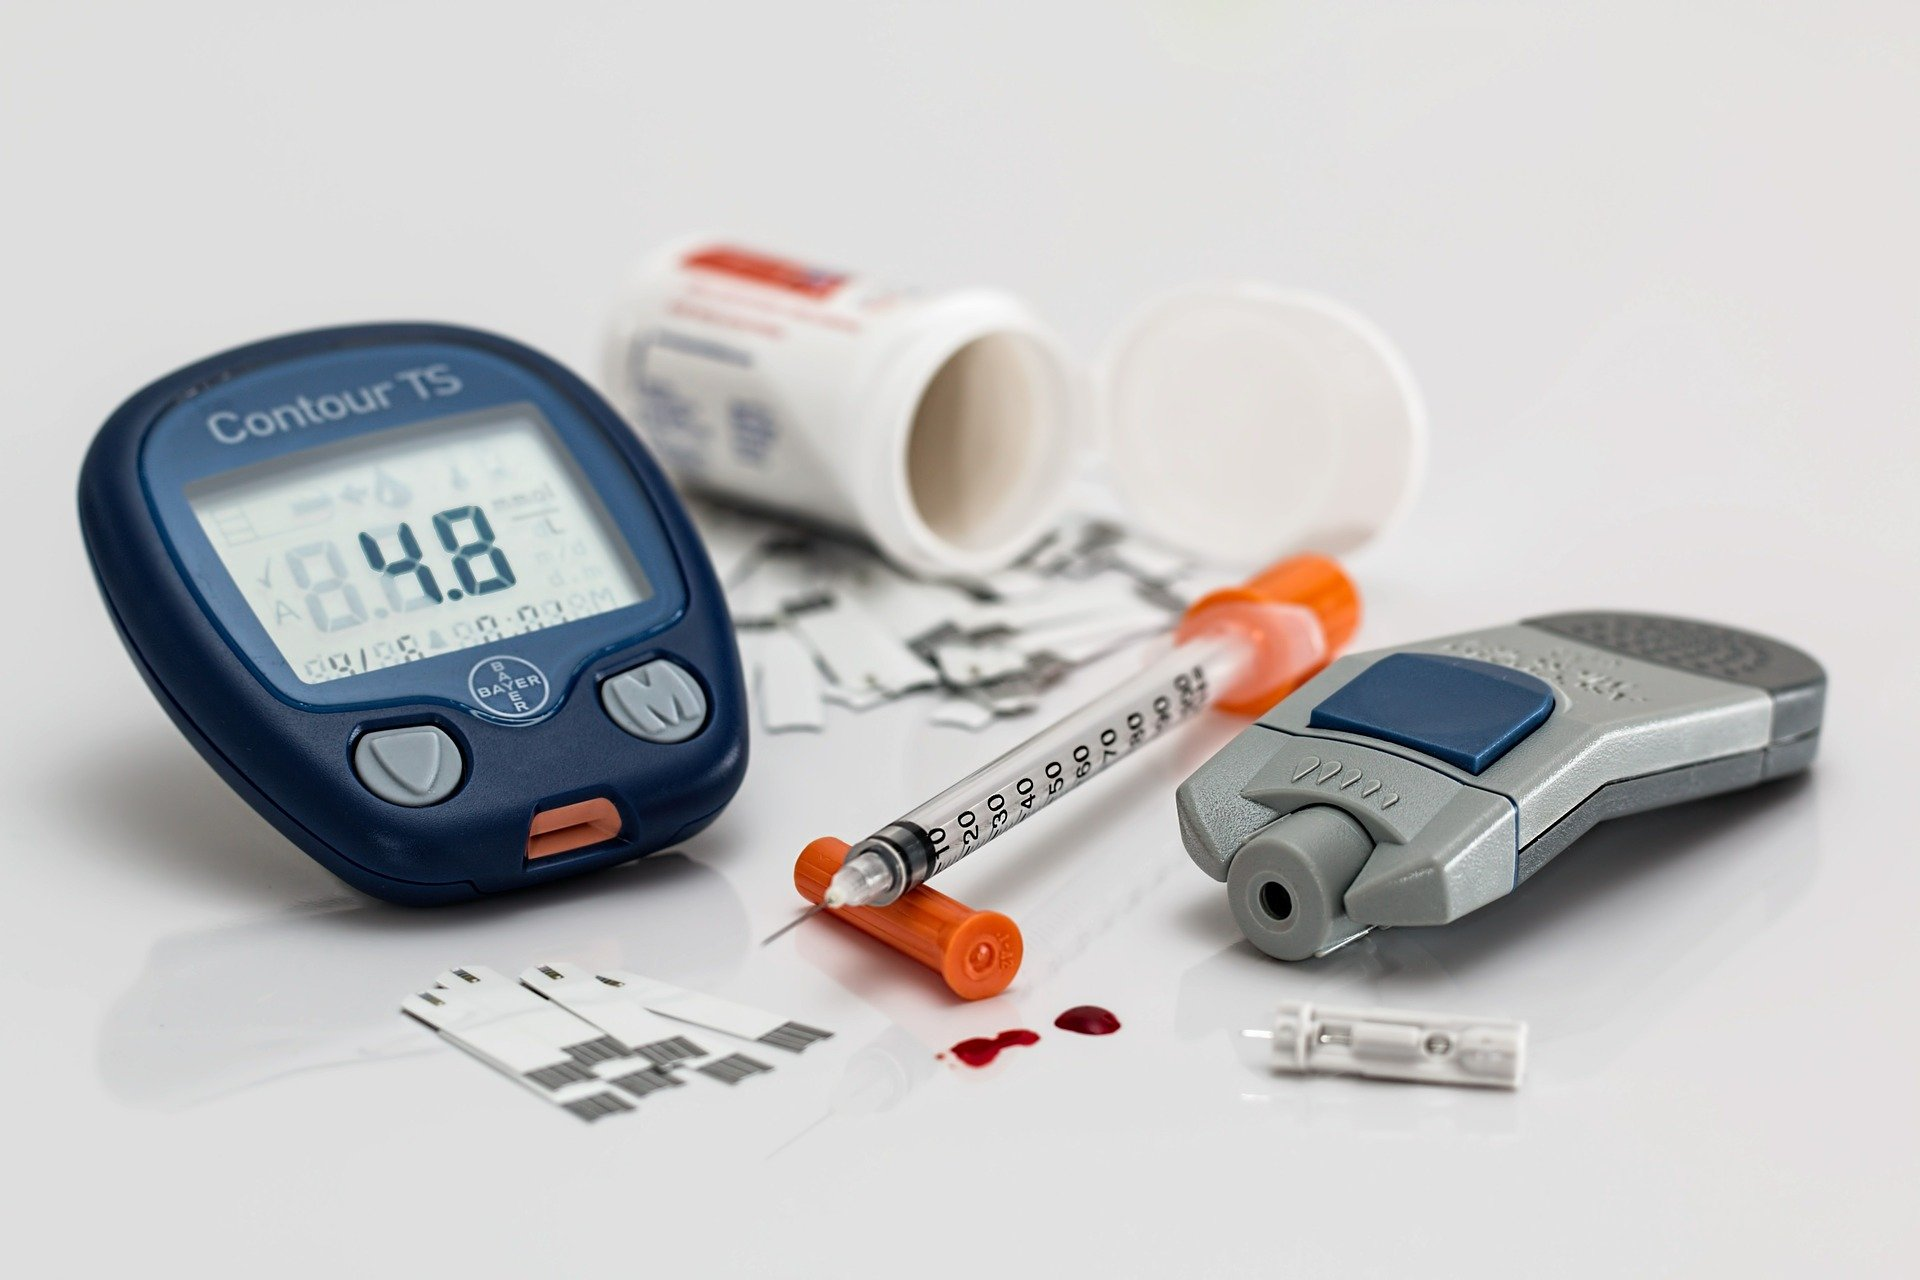 Syringe and a blood sugar measuring device.